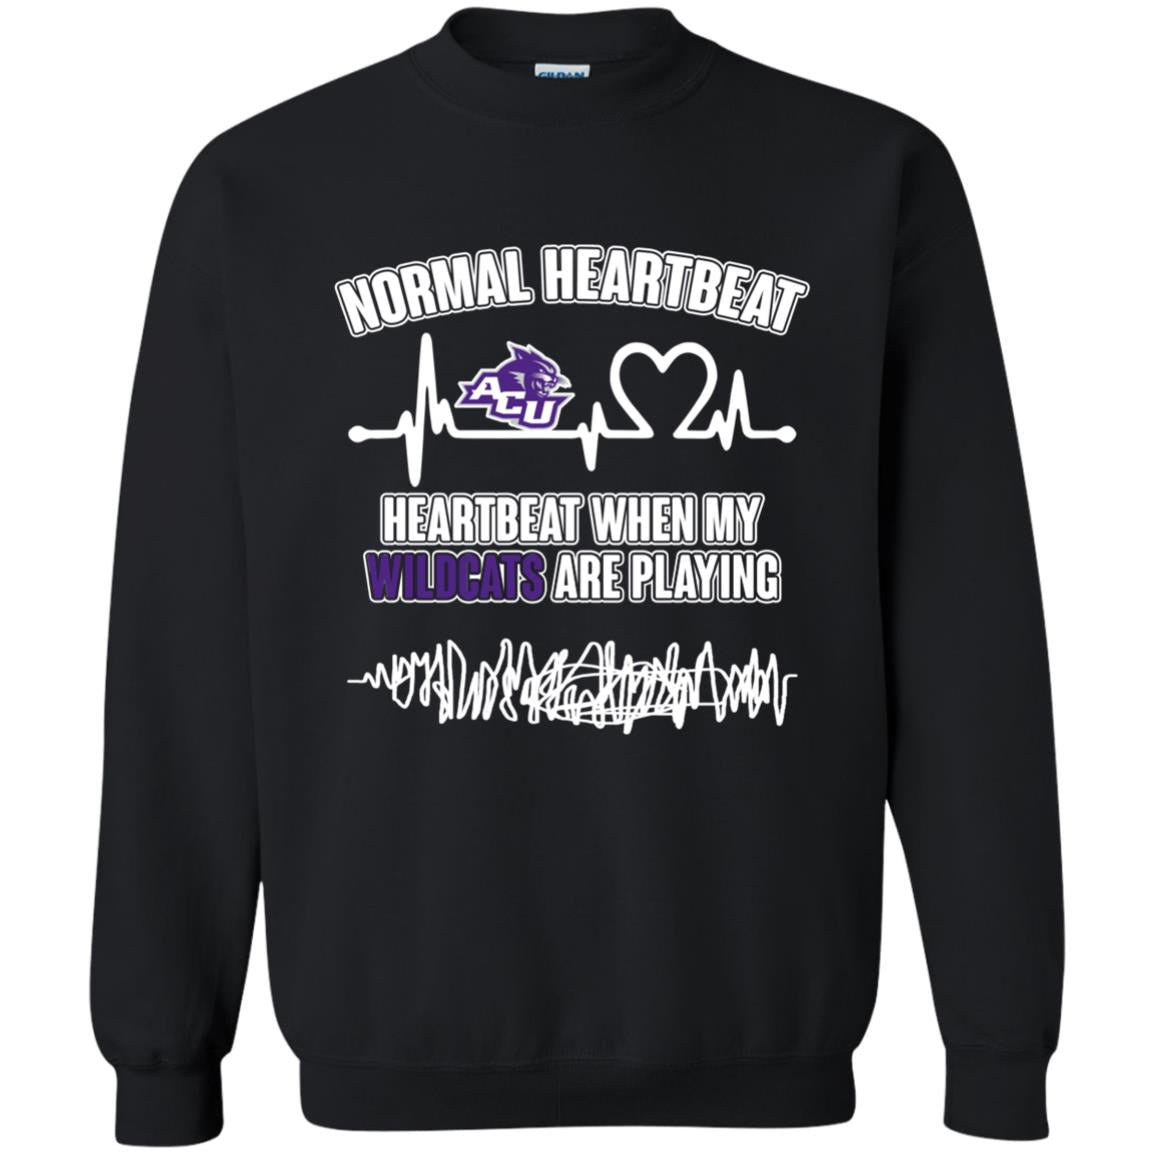 Abilene Christian Wildcats T shirts Heartbeat When My Wildcats Playing Hoodies Sweatshirts